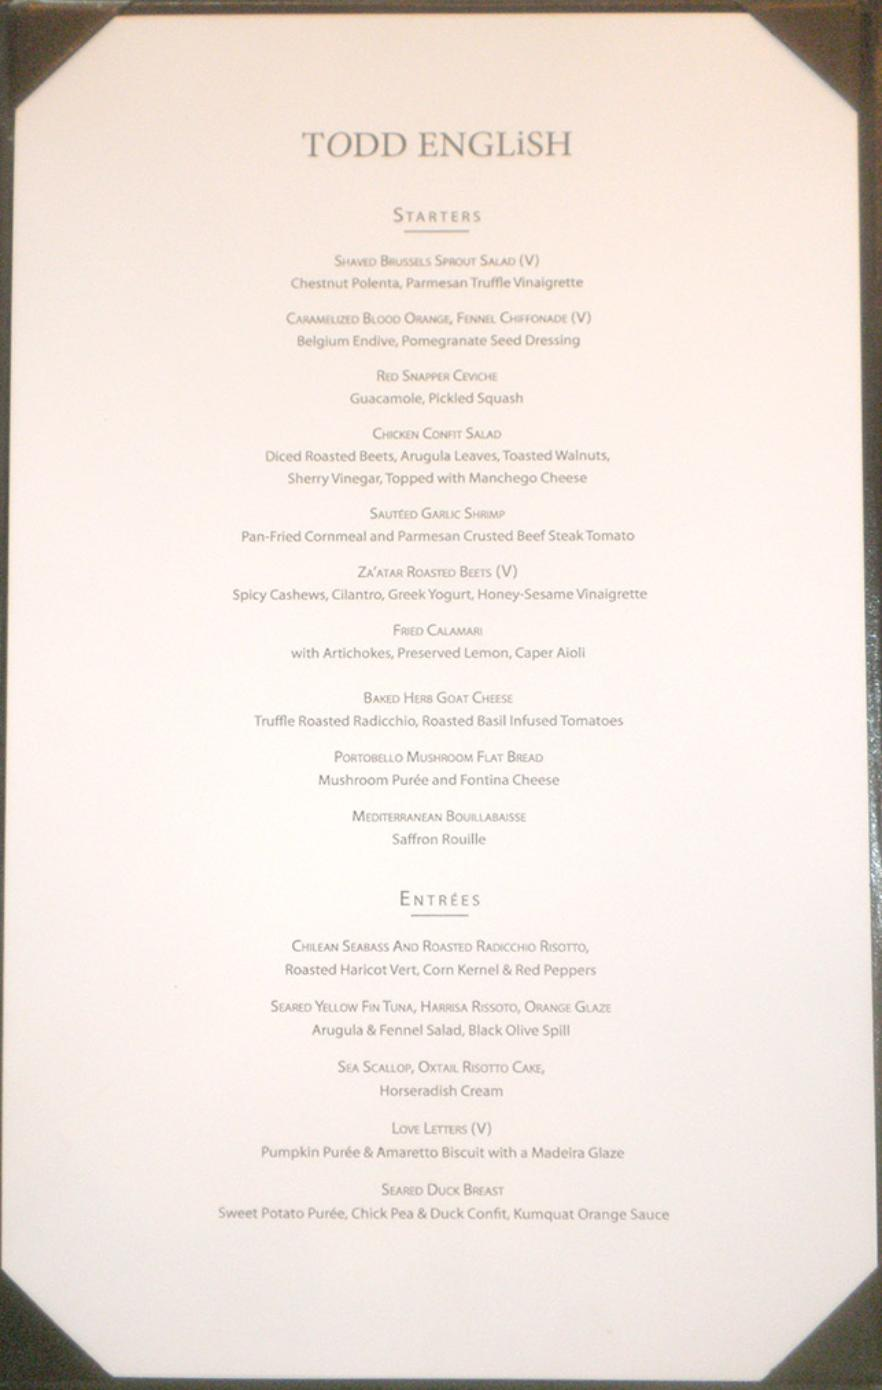 Qm2 Todd English Dinner Menu 2010